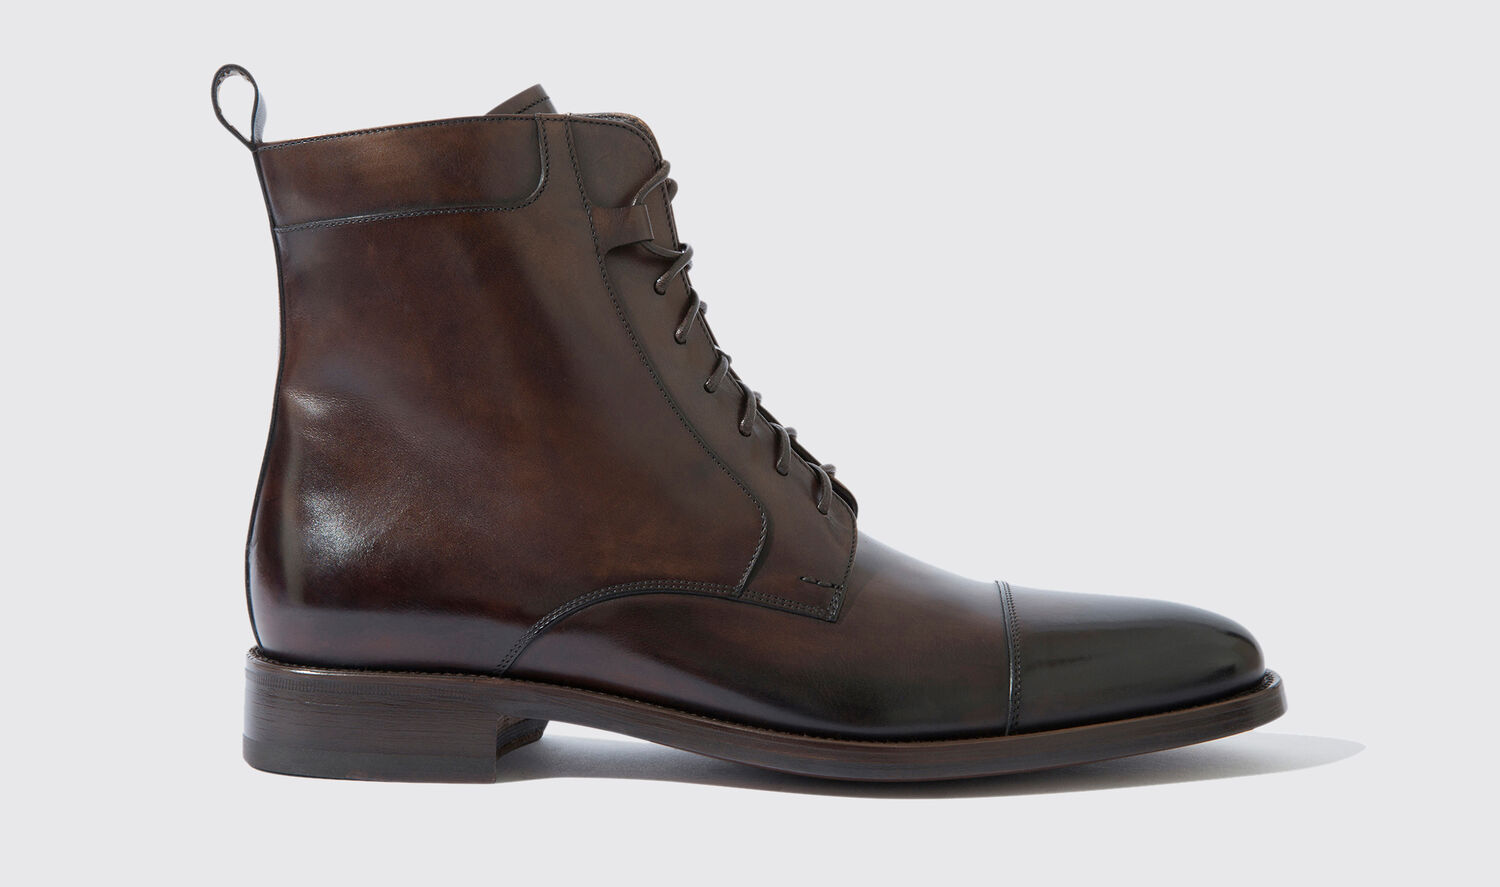 Image of Boots Italian Shoe Scarosso male Totò Ebano Dark Brown Calf Calf Leather 47